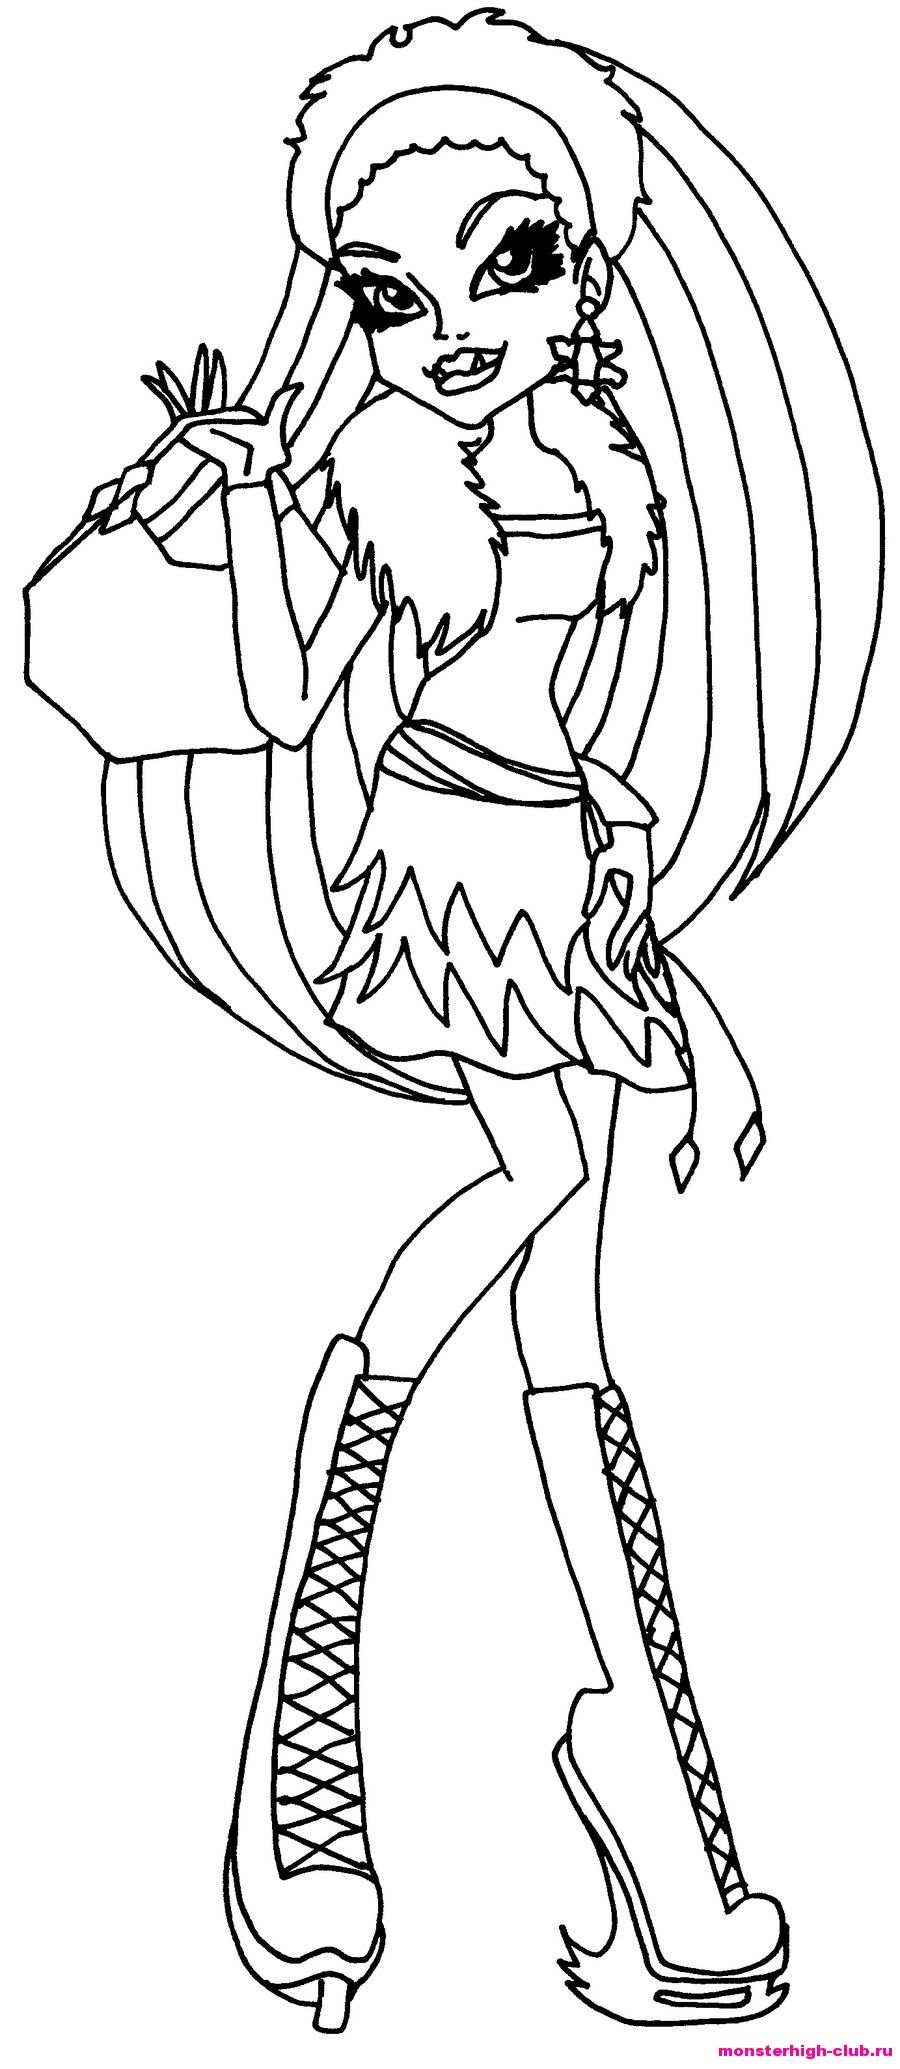 Monster High Frankie Stein Coloring Page Monster High Party